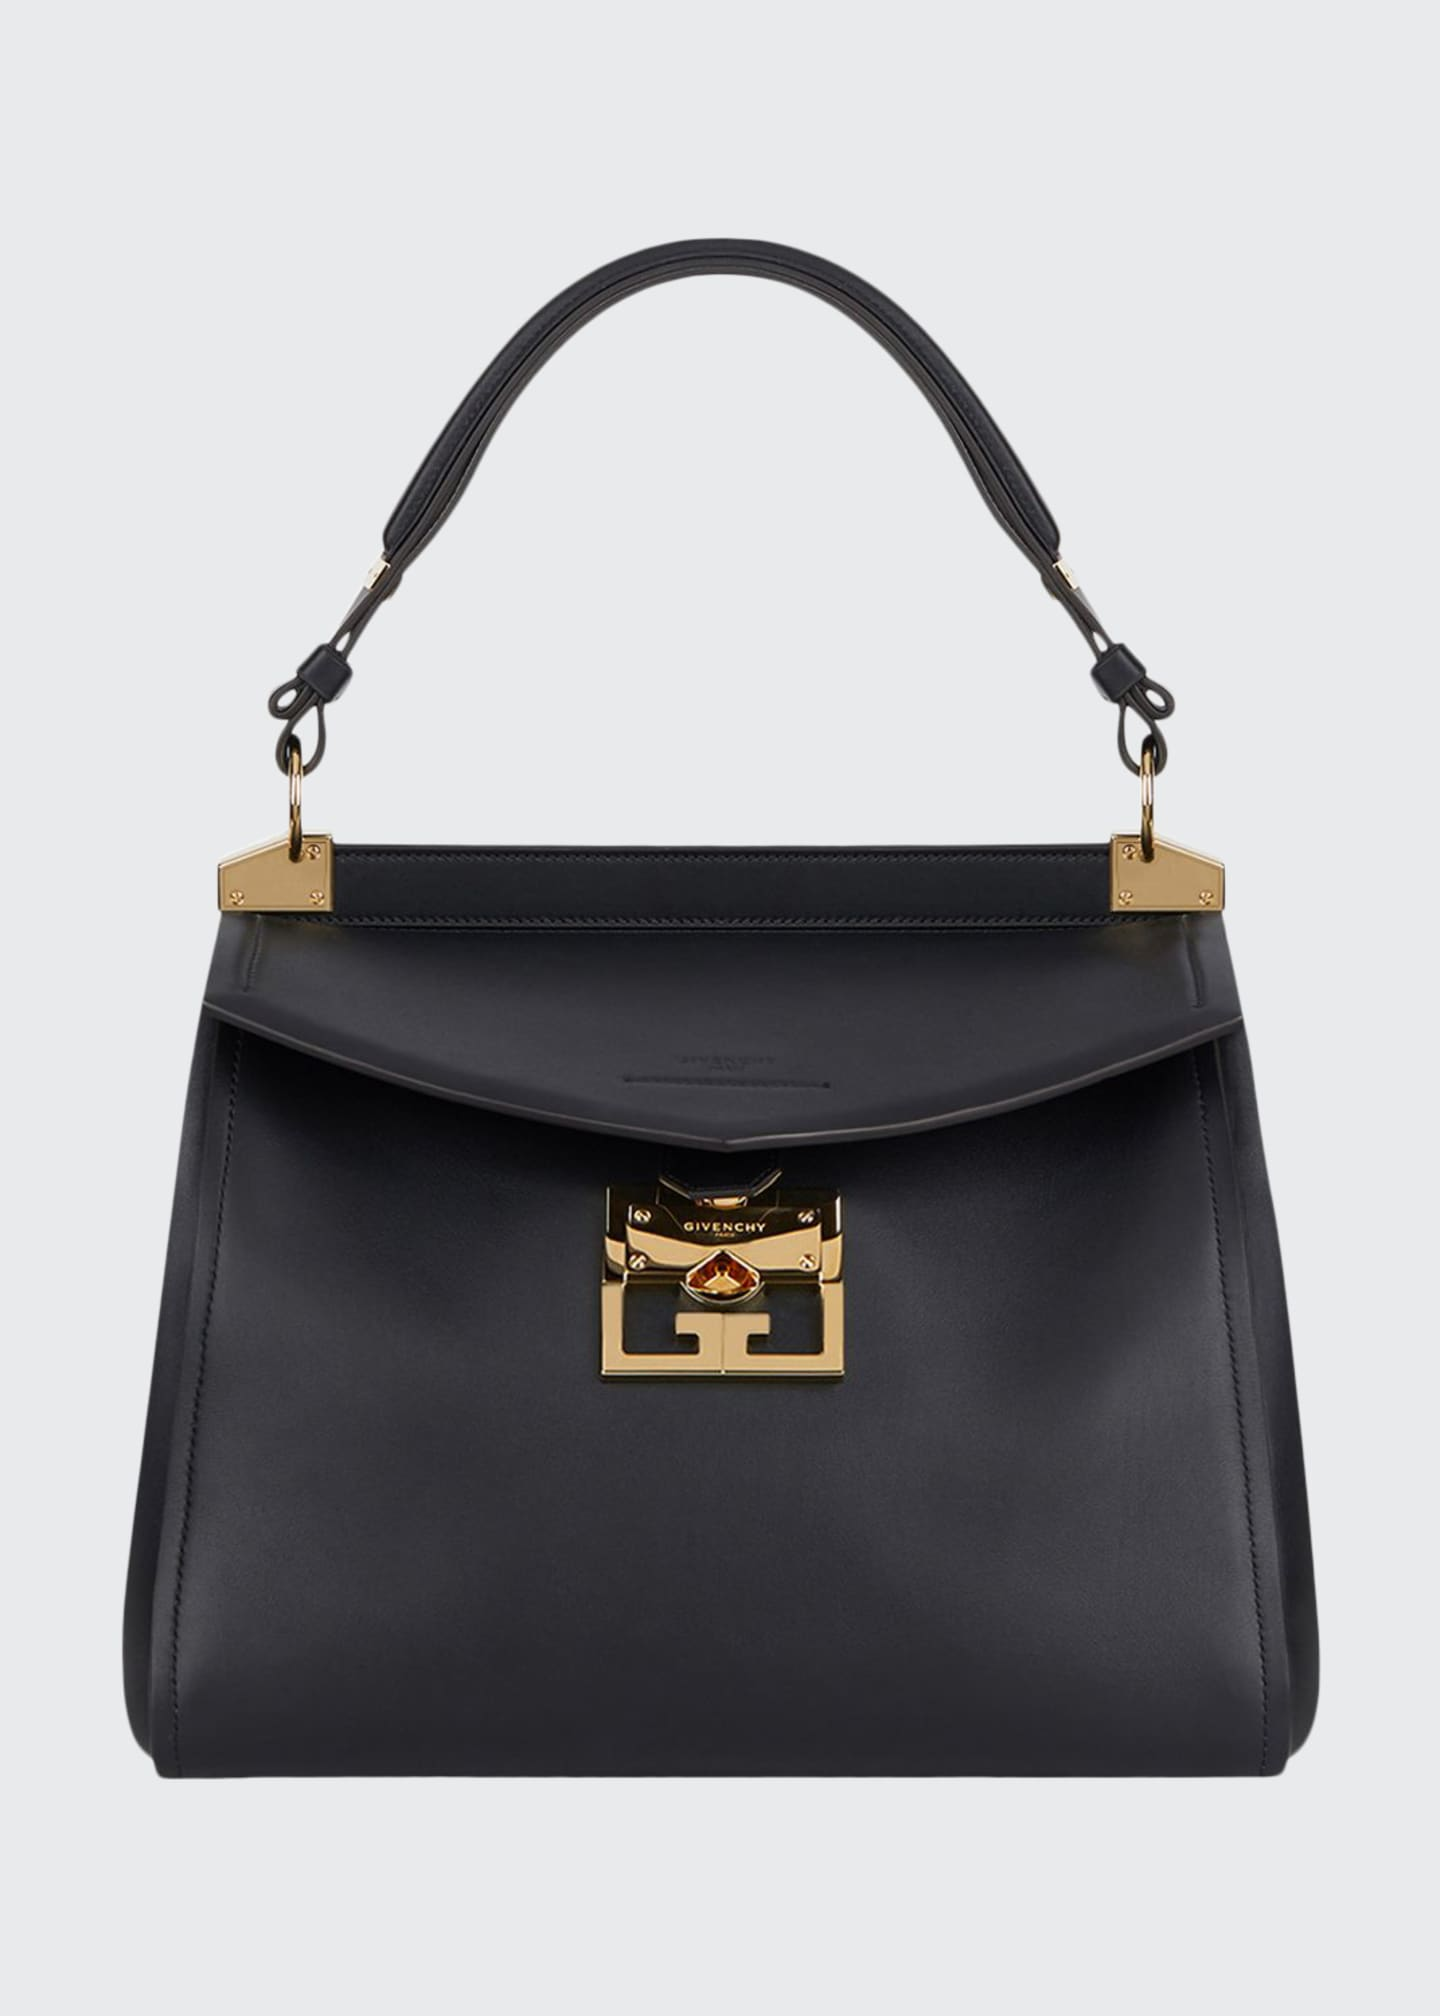 Givenchy Mystic Medium Calfskin Top-Handle Bag